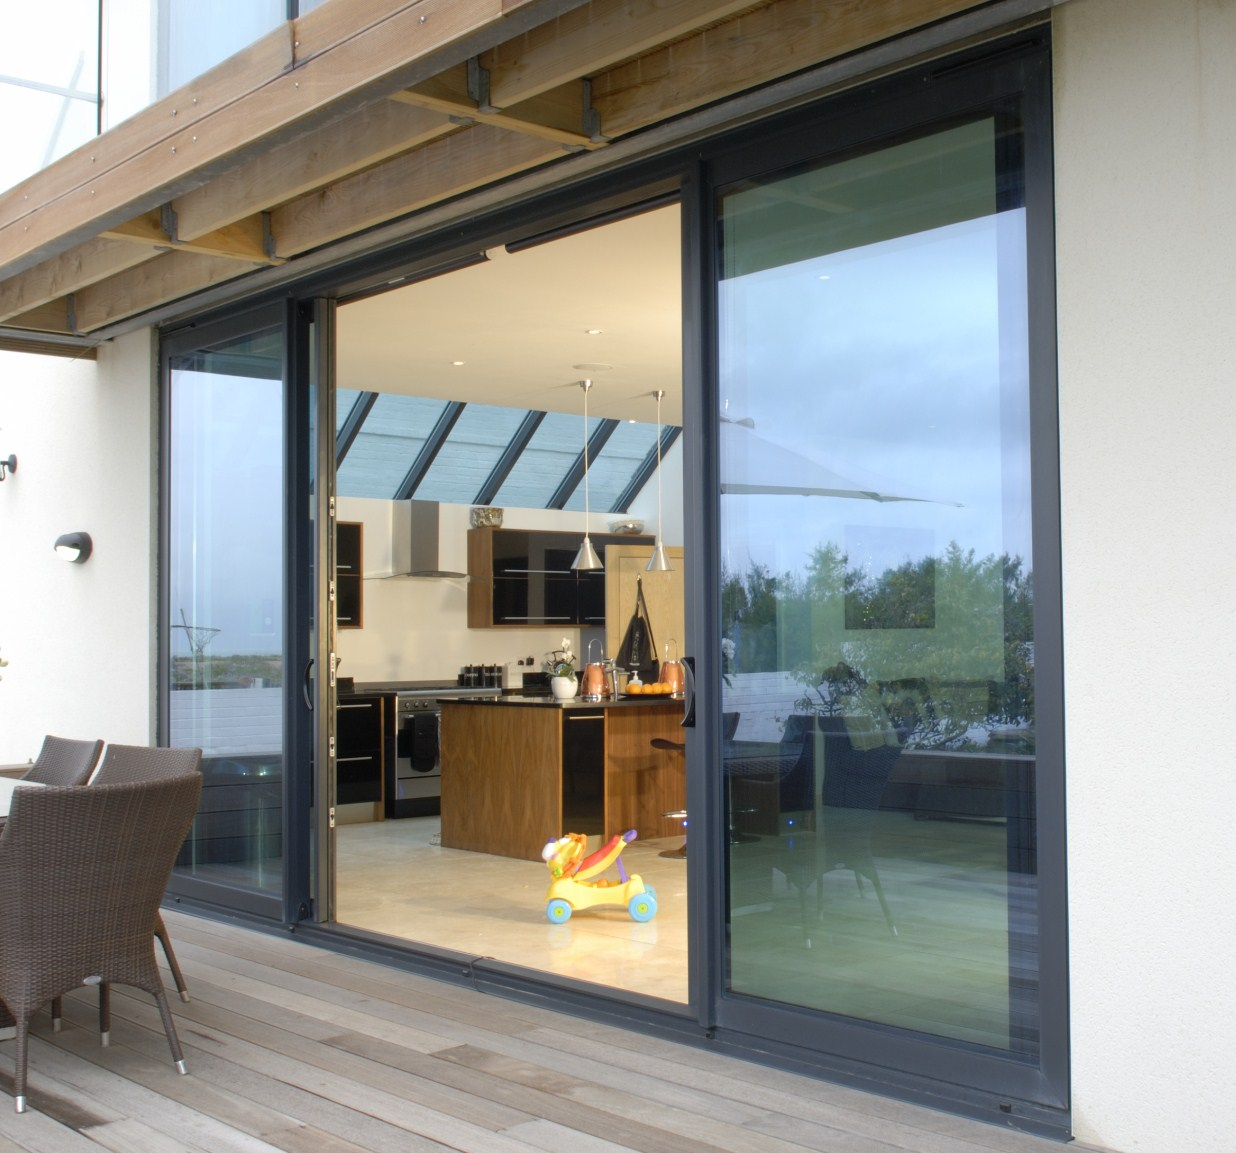 Anthracite Grey Aluminium Sliding doors on balcony